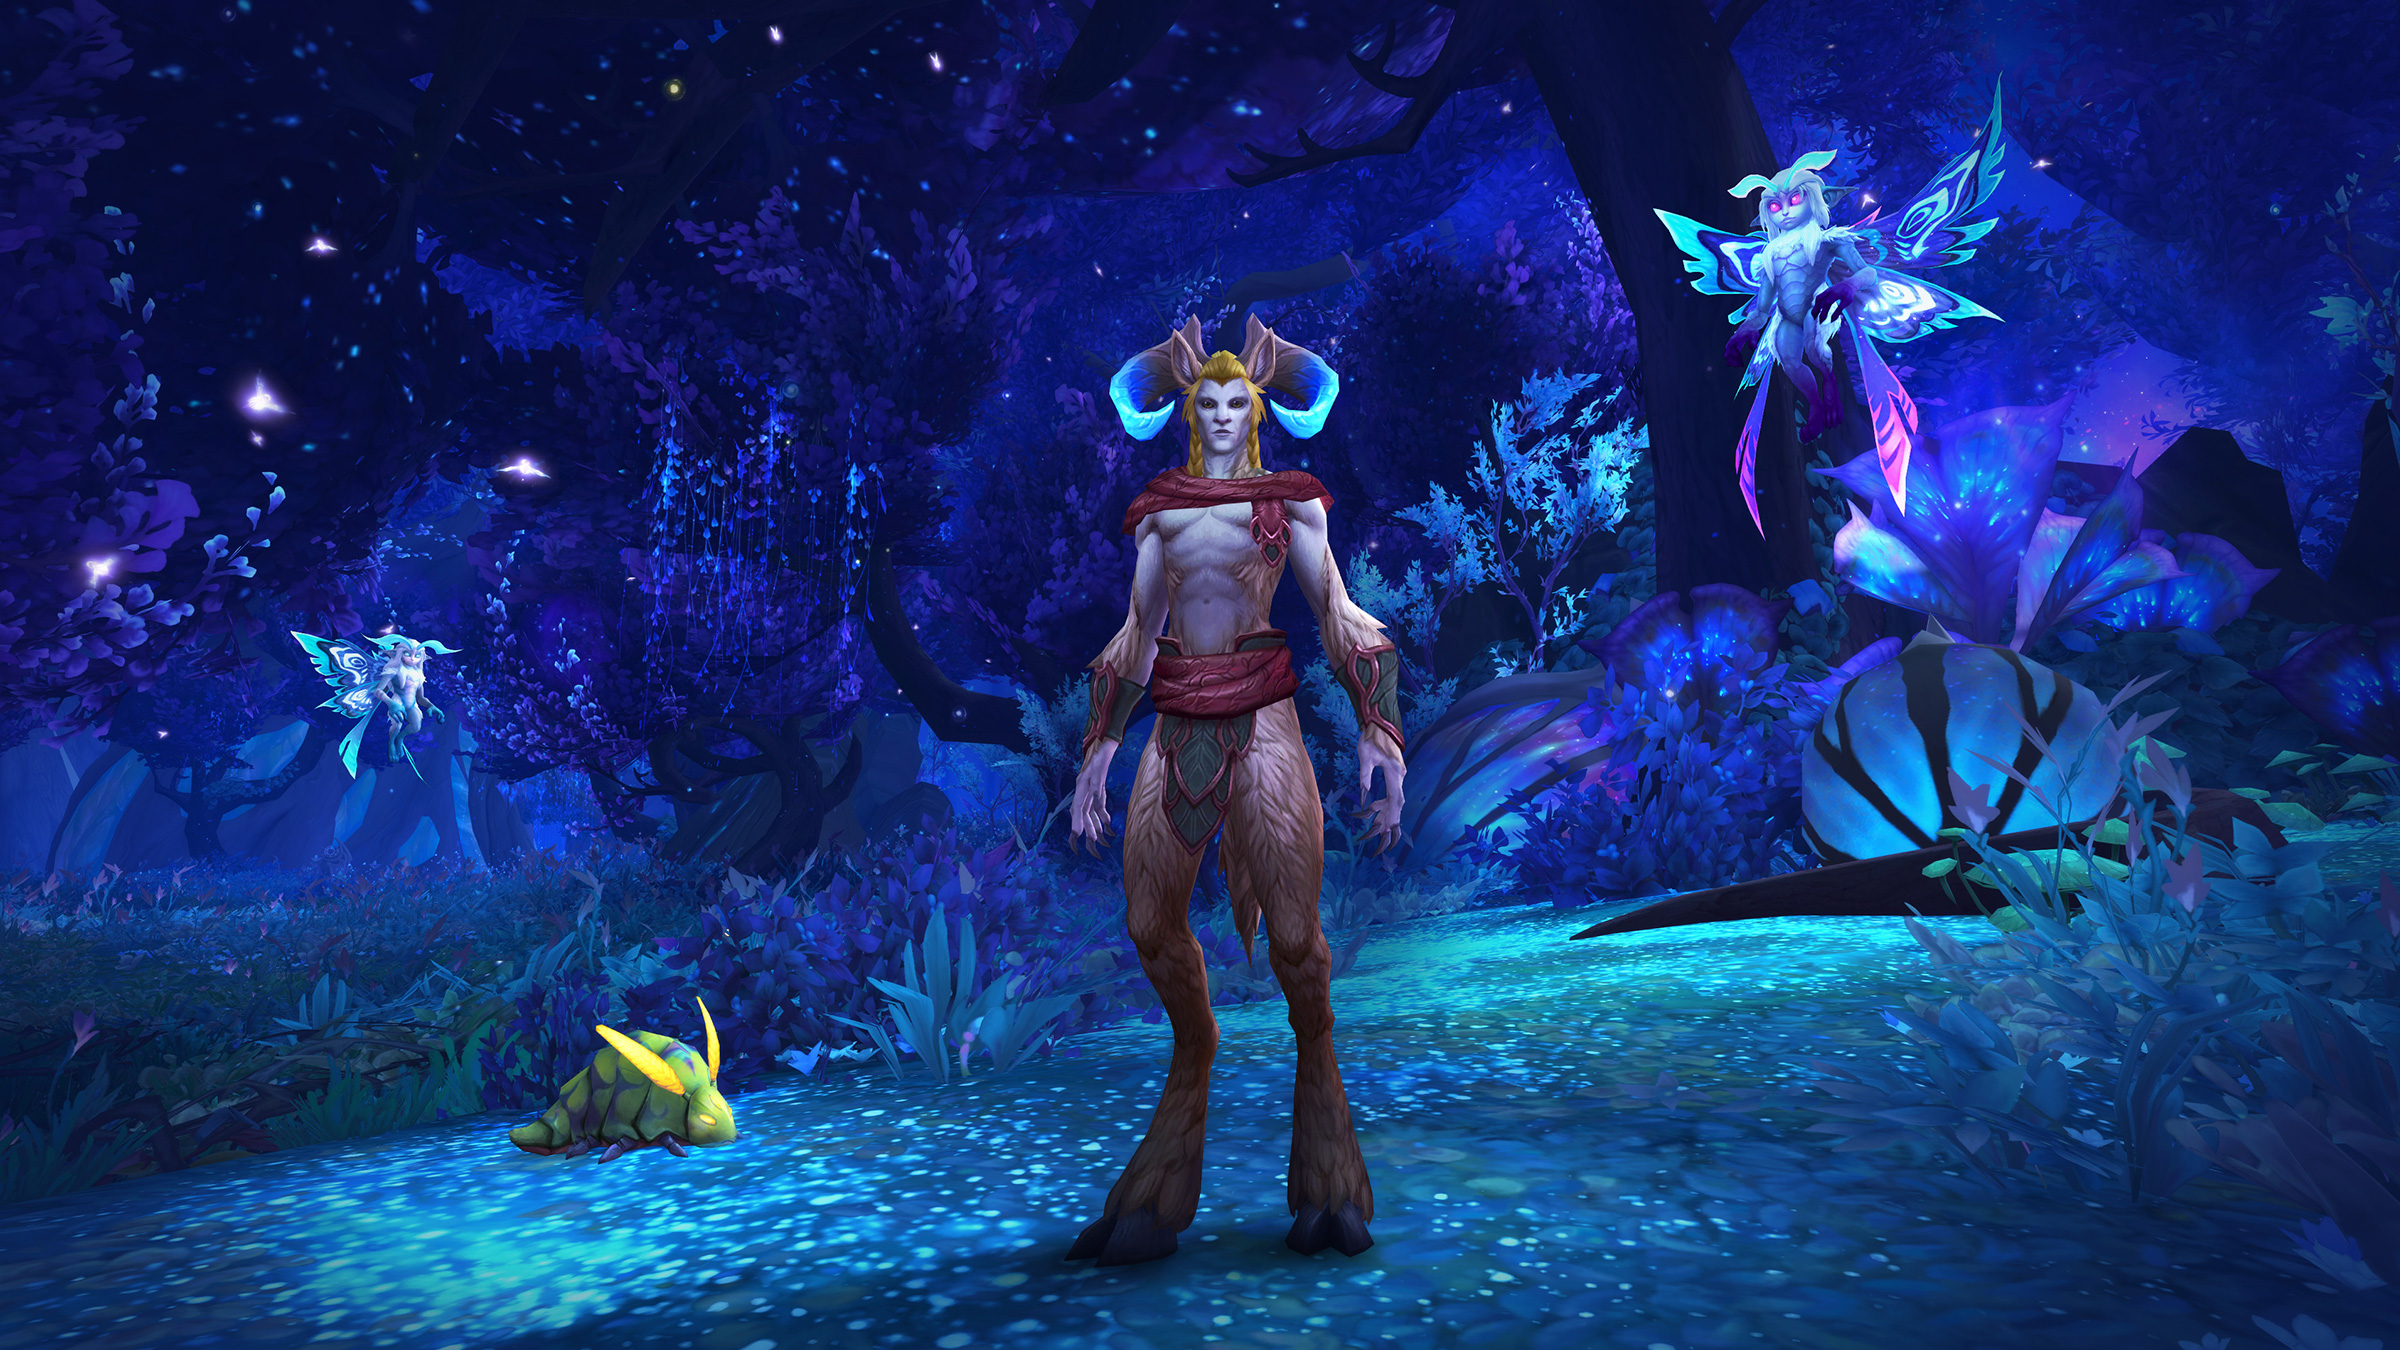 Resumen de «World of Warcraft: lo que nos depara el futuro»